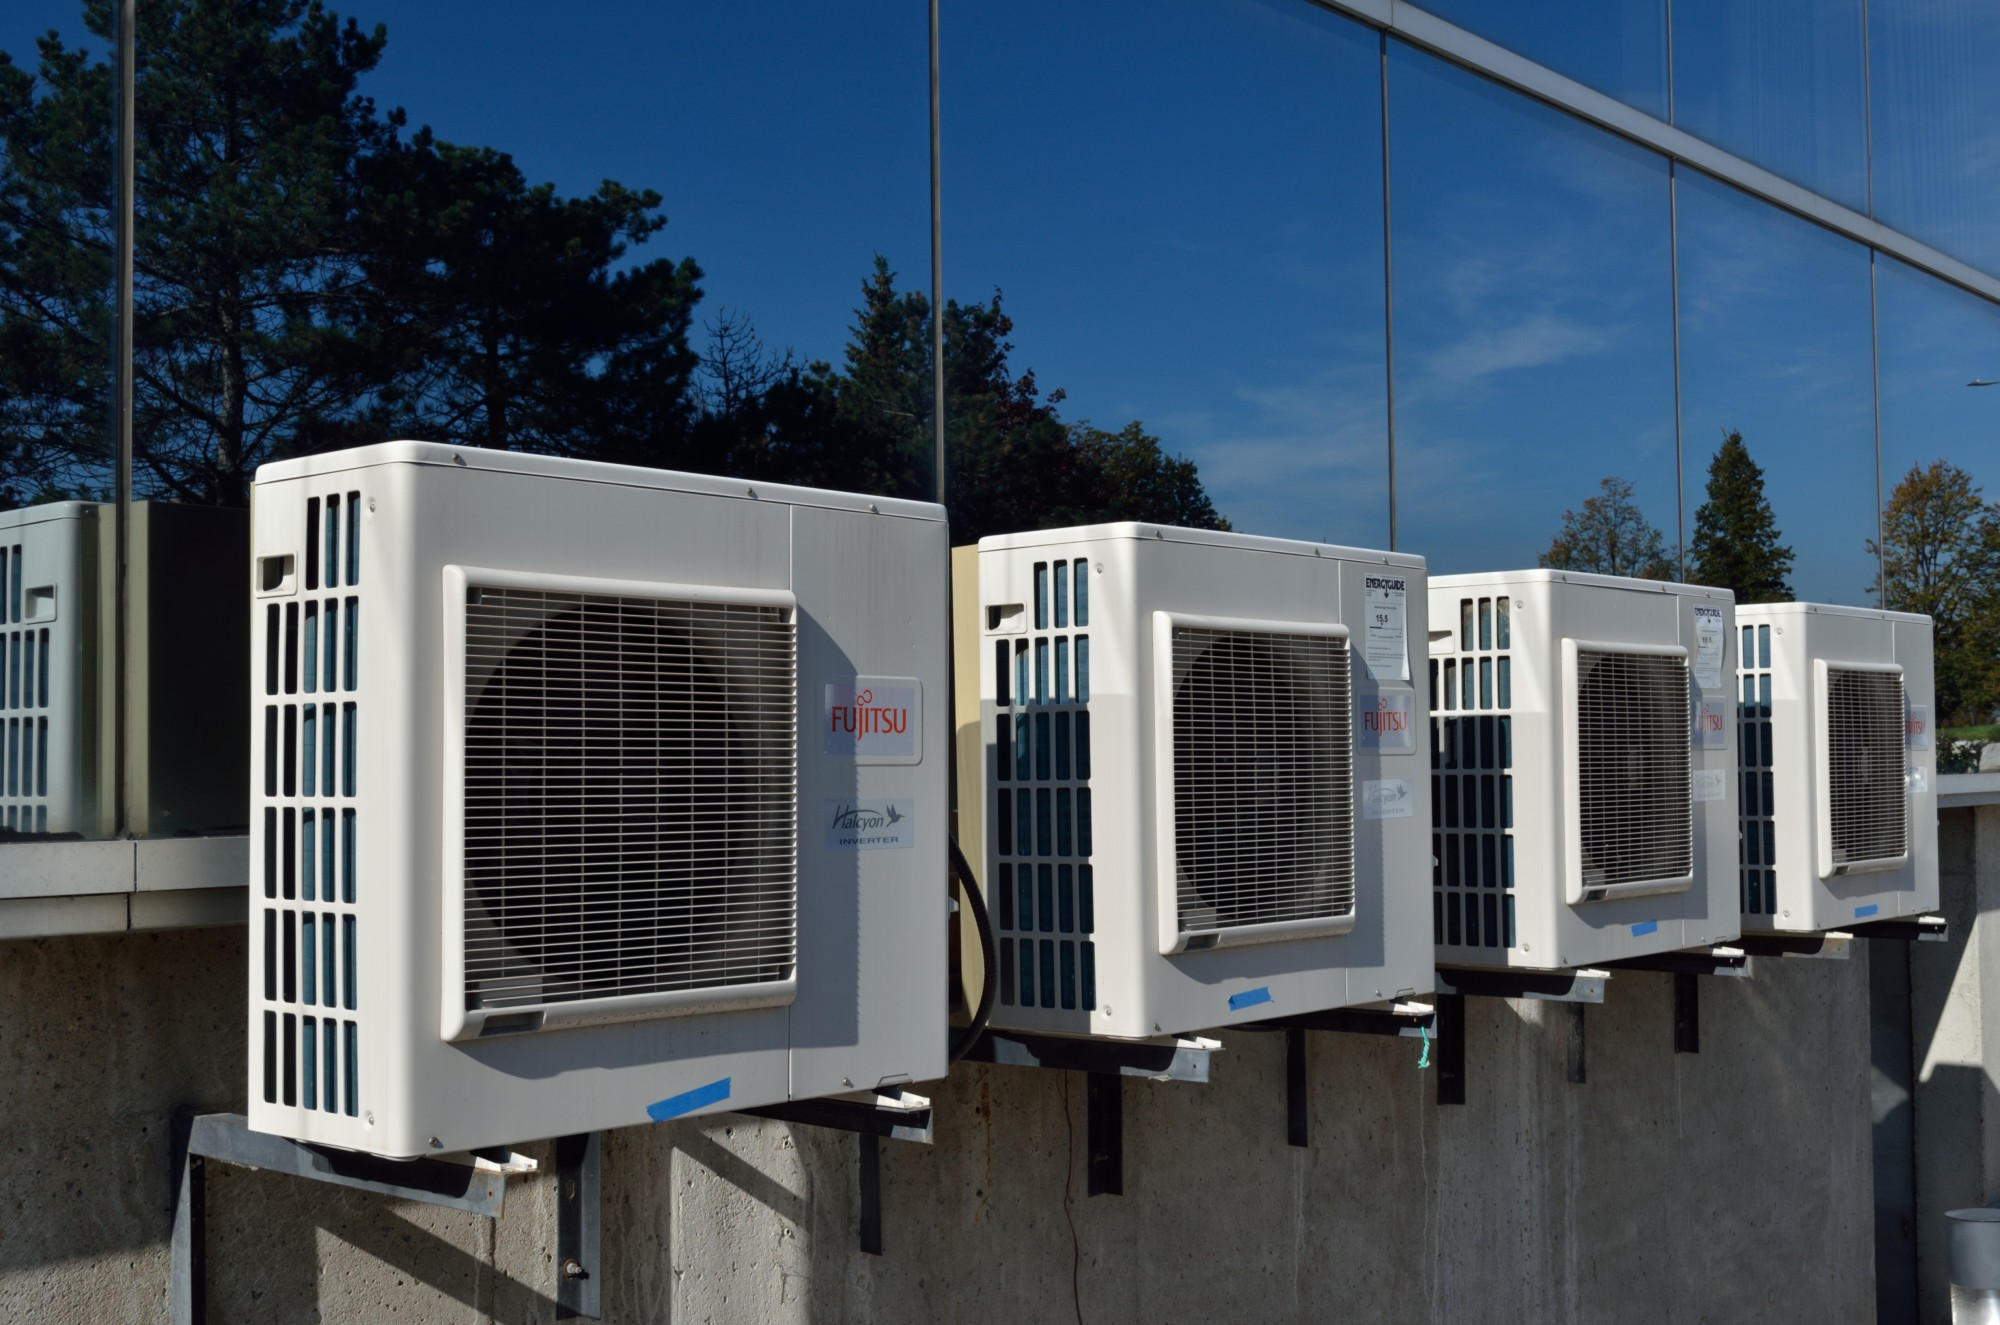 Keeping it Cool: How to Start an HVAC Business